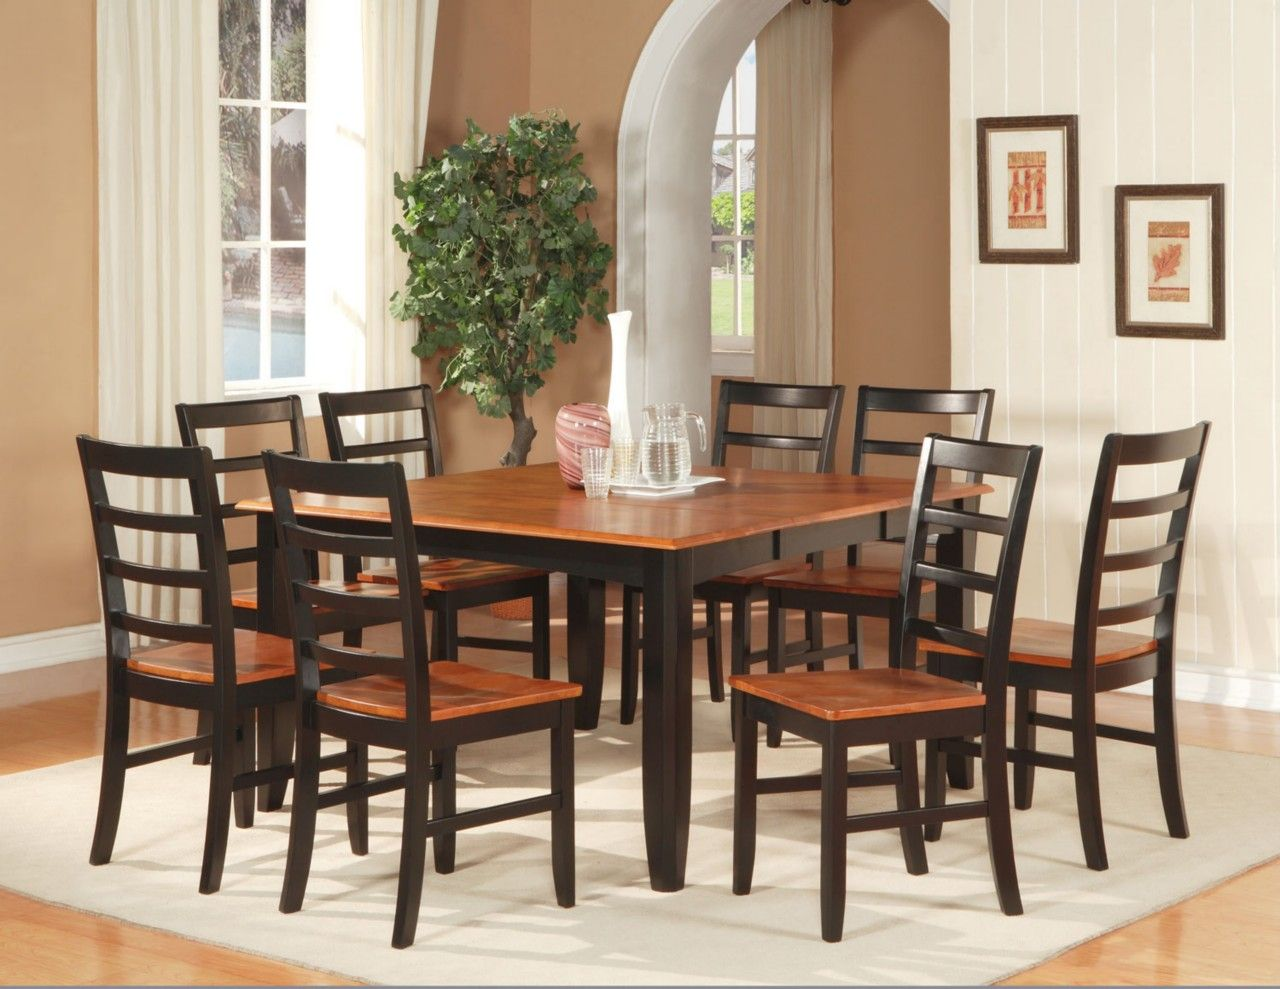 Dining Room Tables Valuable Information To Get Know More